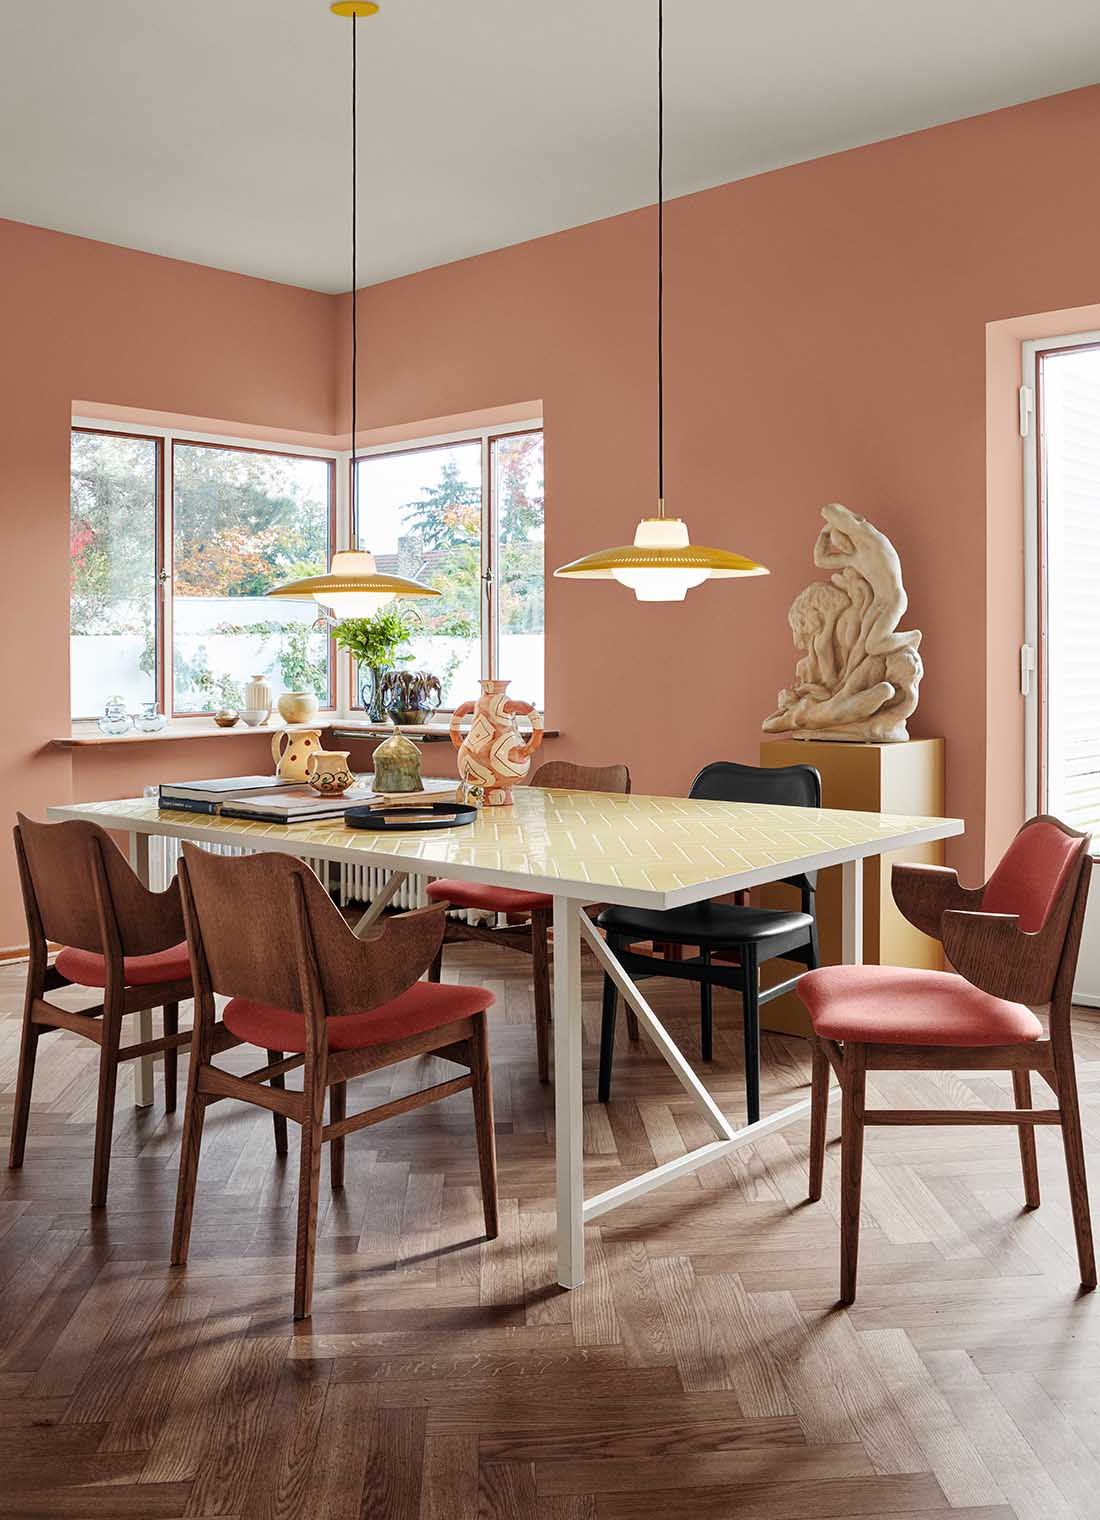 Opal shade pendant in dining room setting